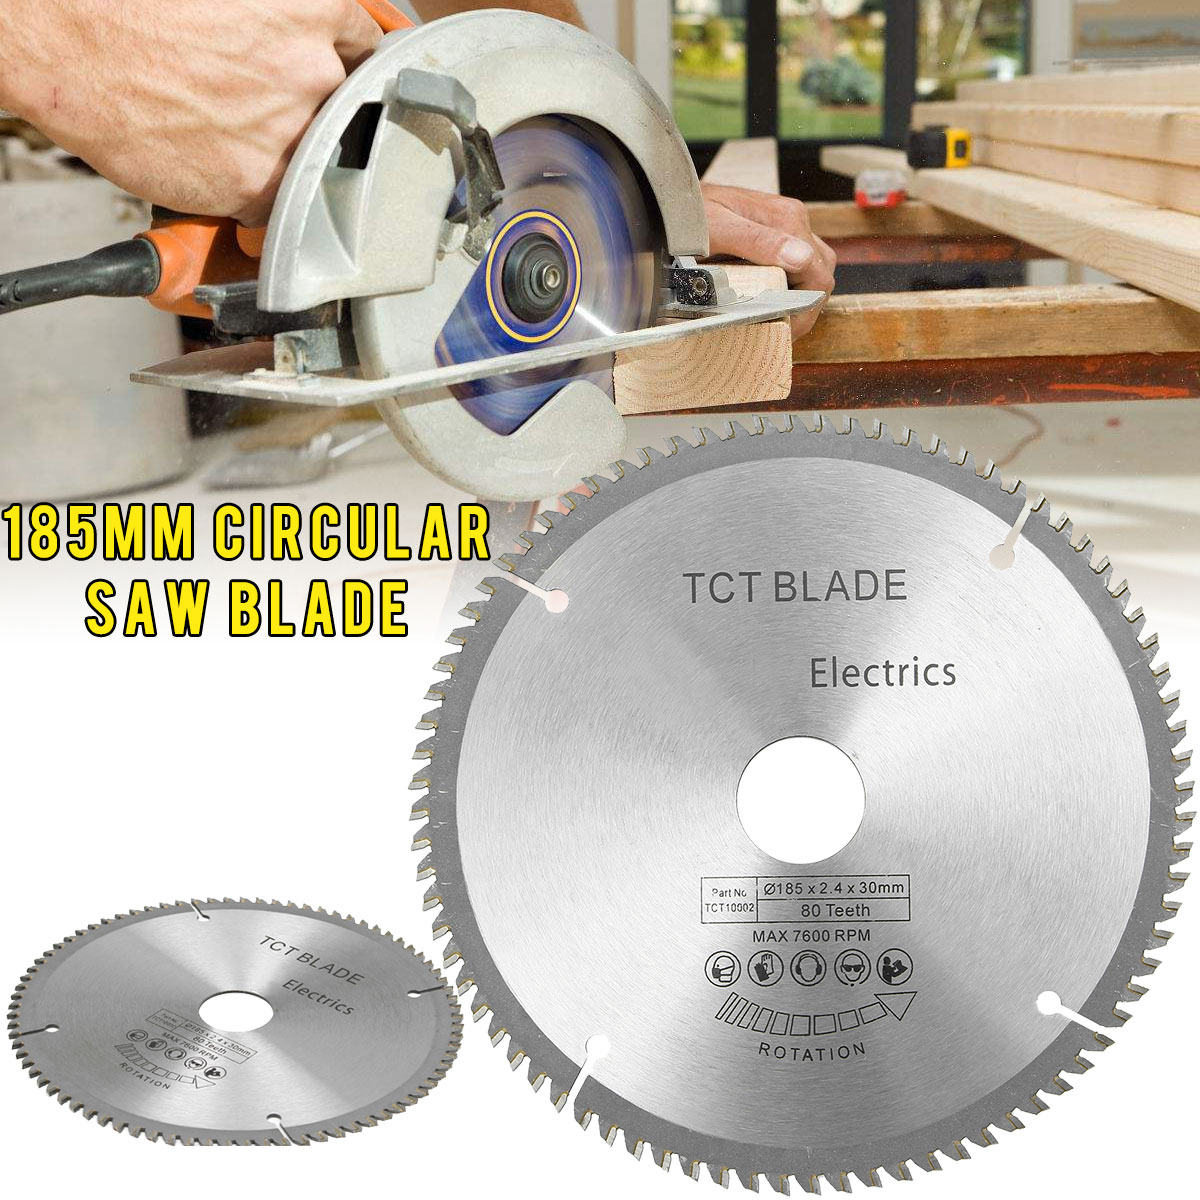 High-speed Steel 80 Teeth Circular Saw Blade With 3pcs Reduction Rings Fits For 190mm Saws For Bosch, Makita, Festool & Others